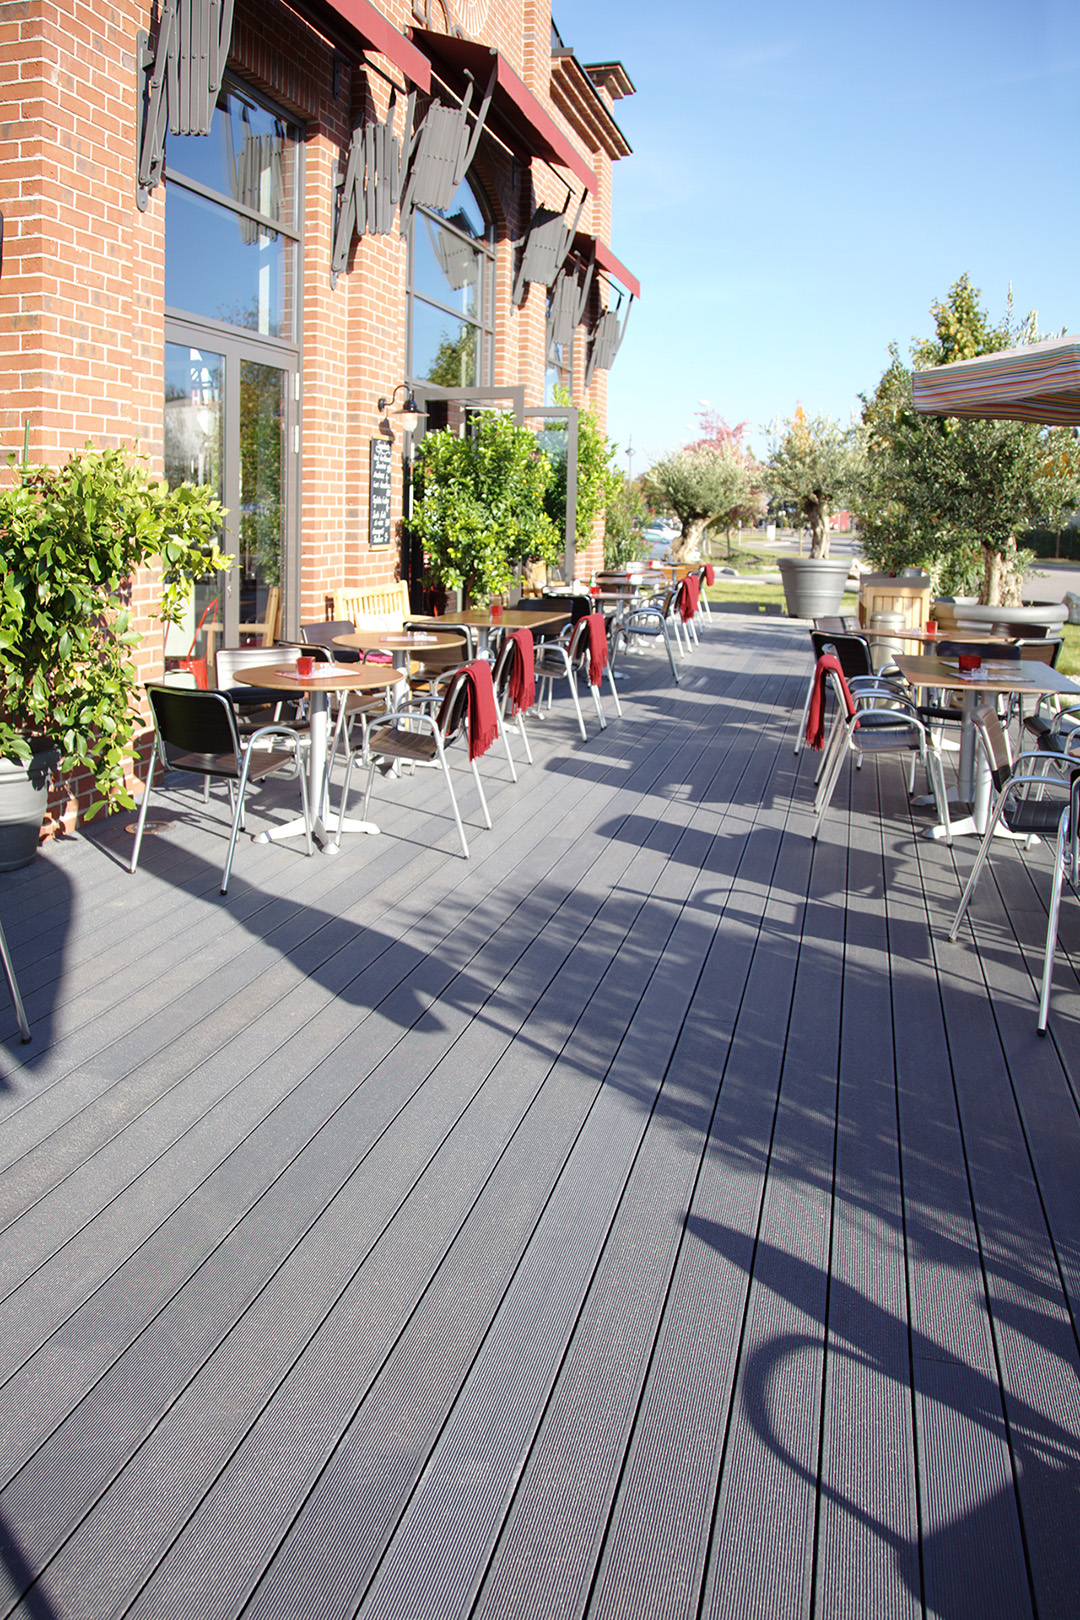 UPM ProFi composite decking at a restaurant